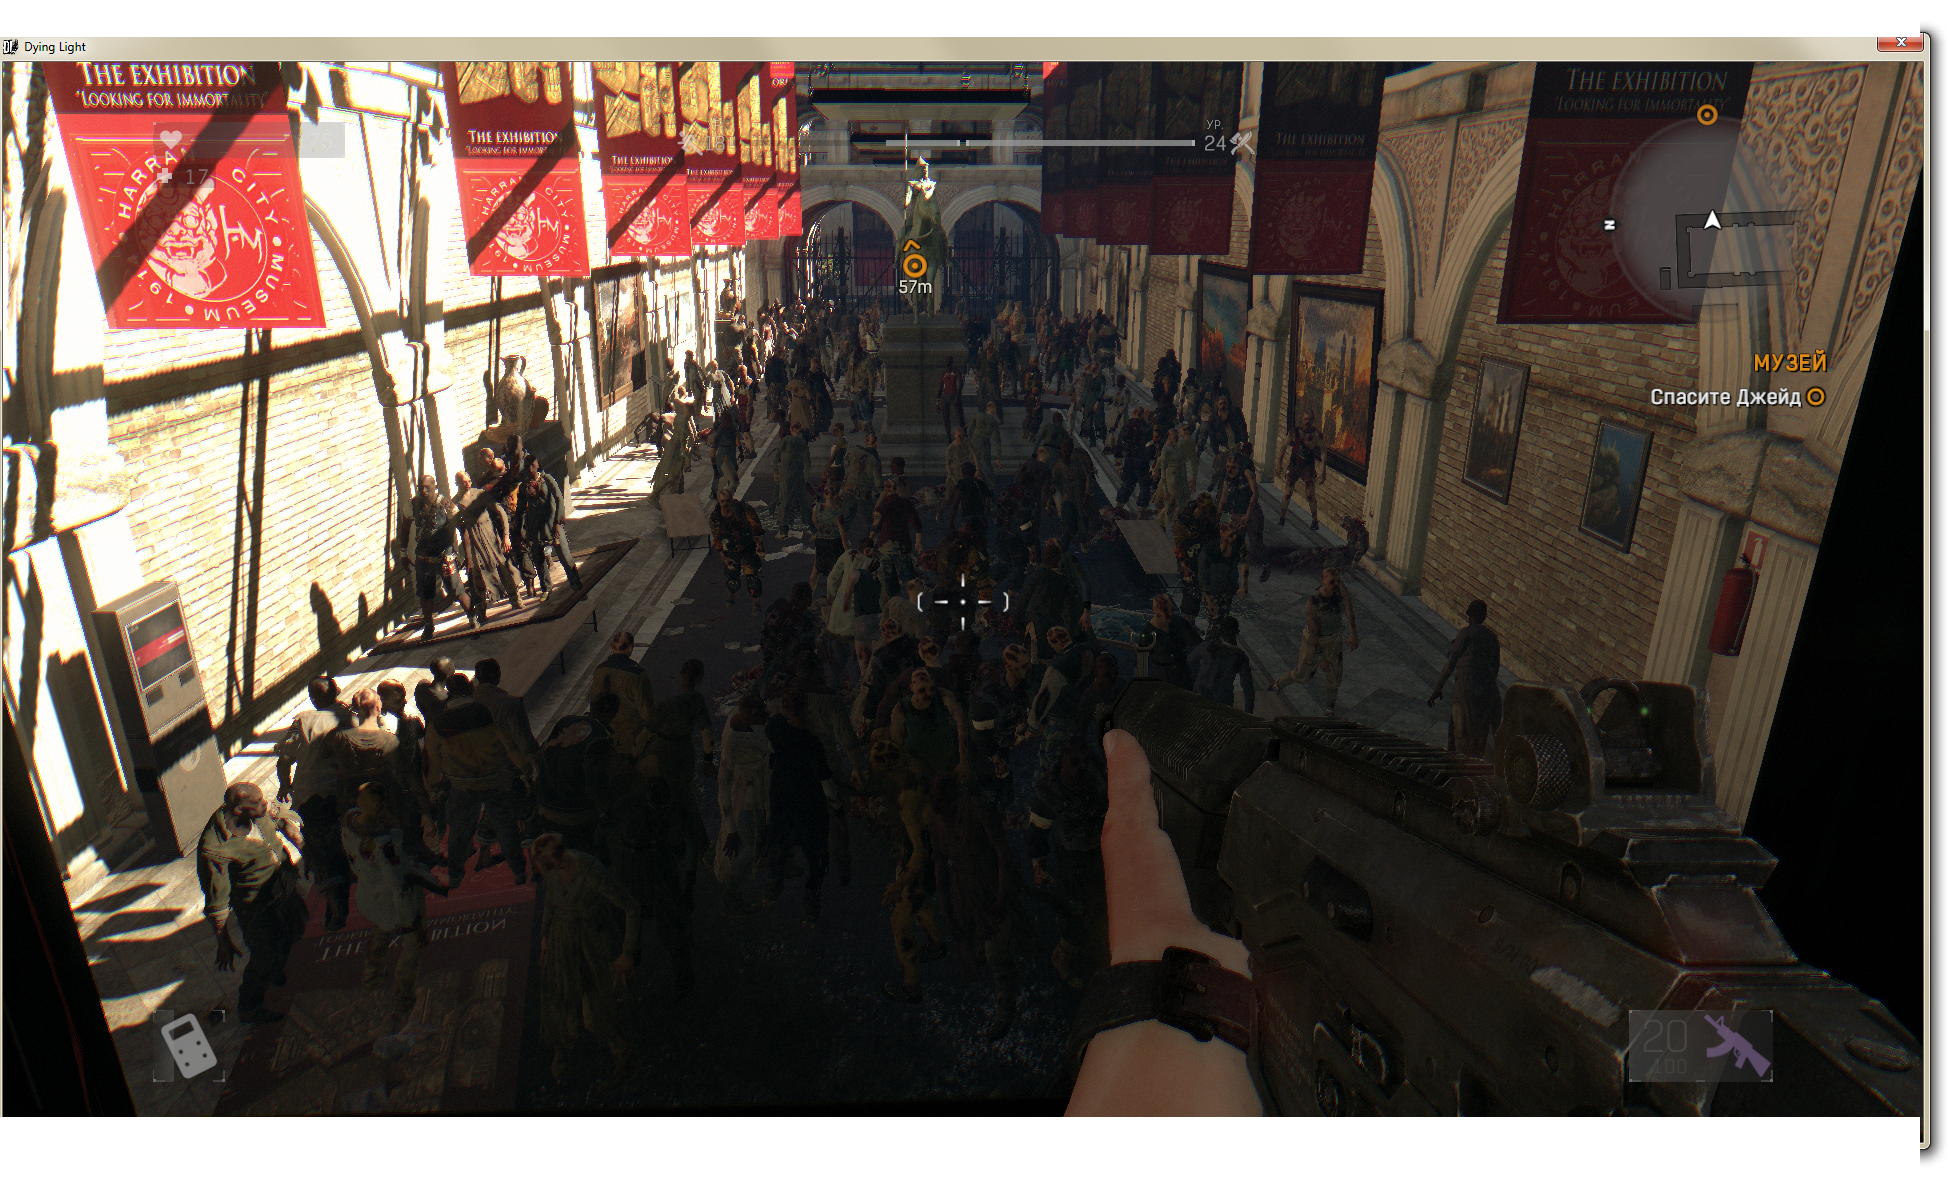 2015-02-06 10-09-15 Dying Light